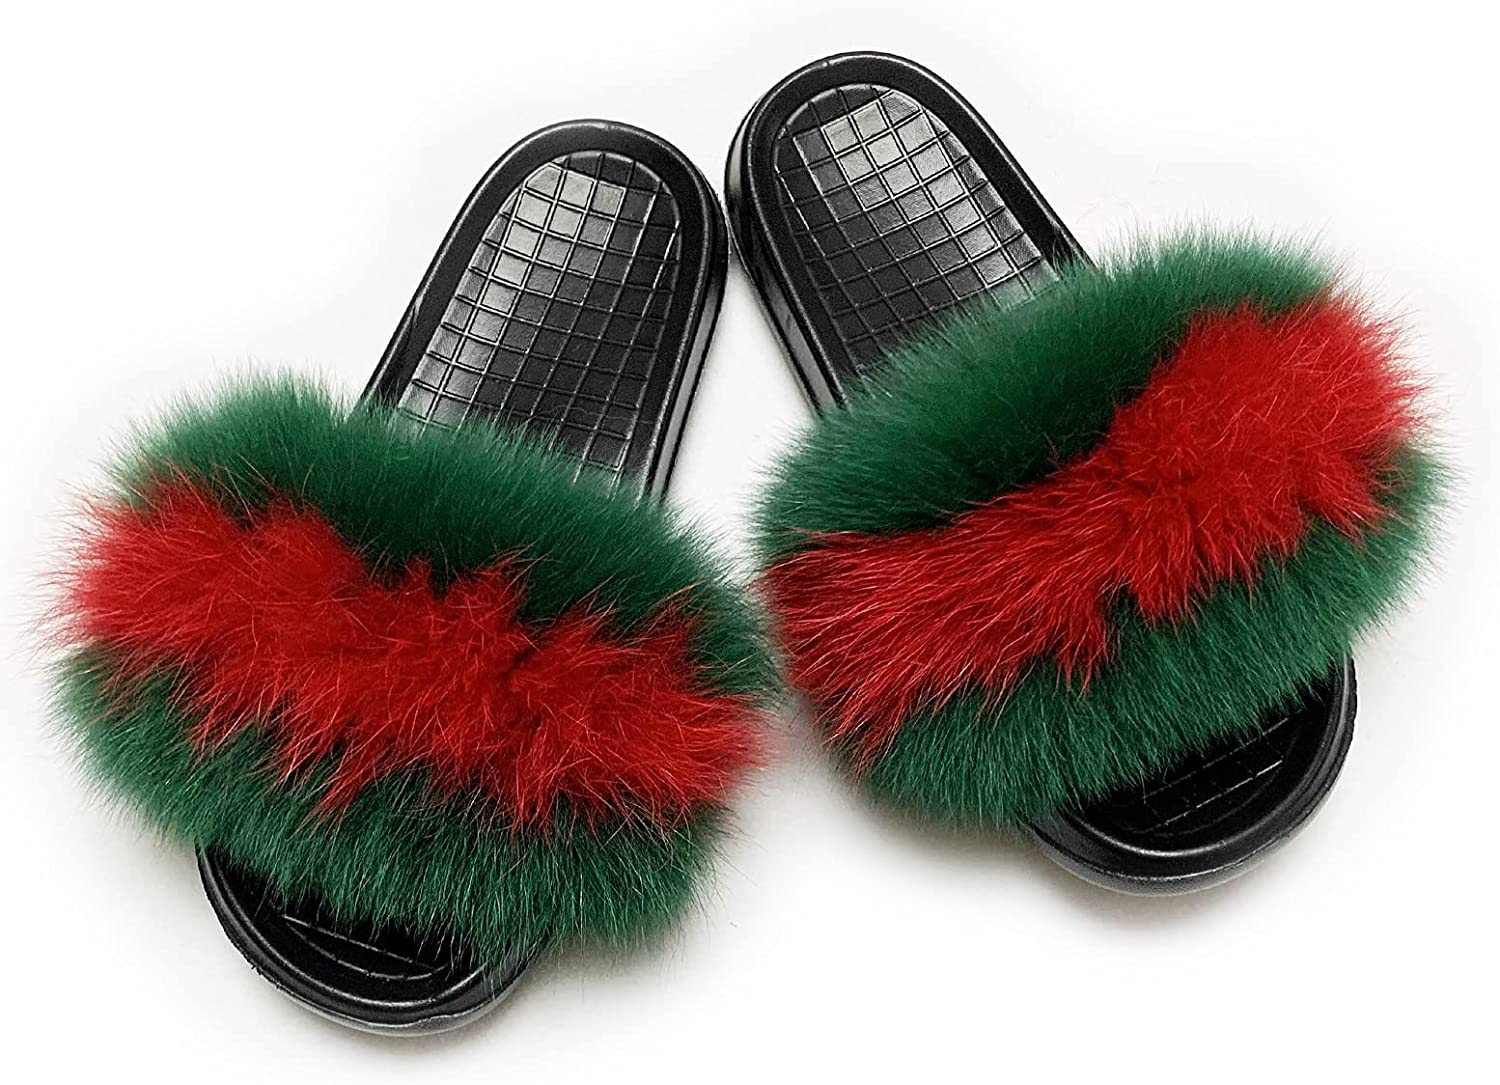 Women's Real Fox Fur Slides Slippers Sandal, Open Toe Cute Furry Fur Slippers, Indoor or Outdoor Comfortable Fur Slide Sandals with Fluffy Fur and Soft Sole